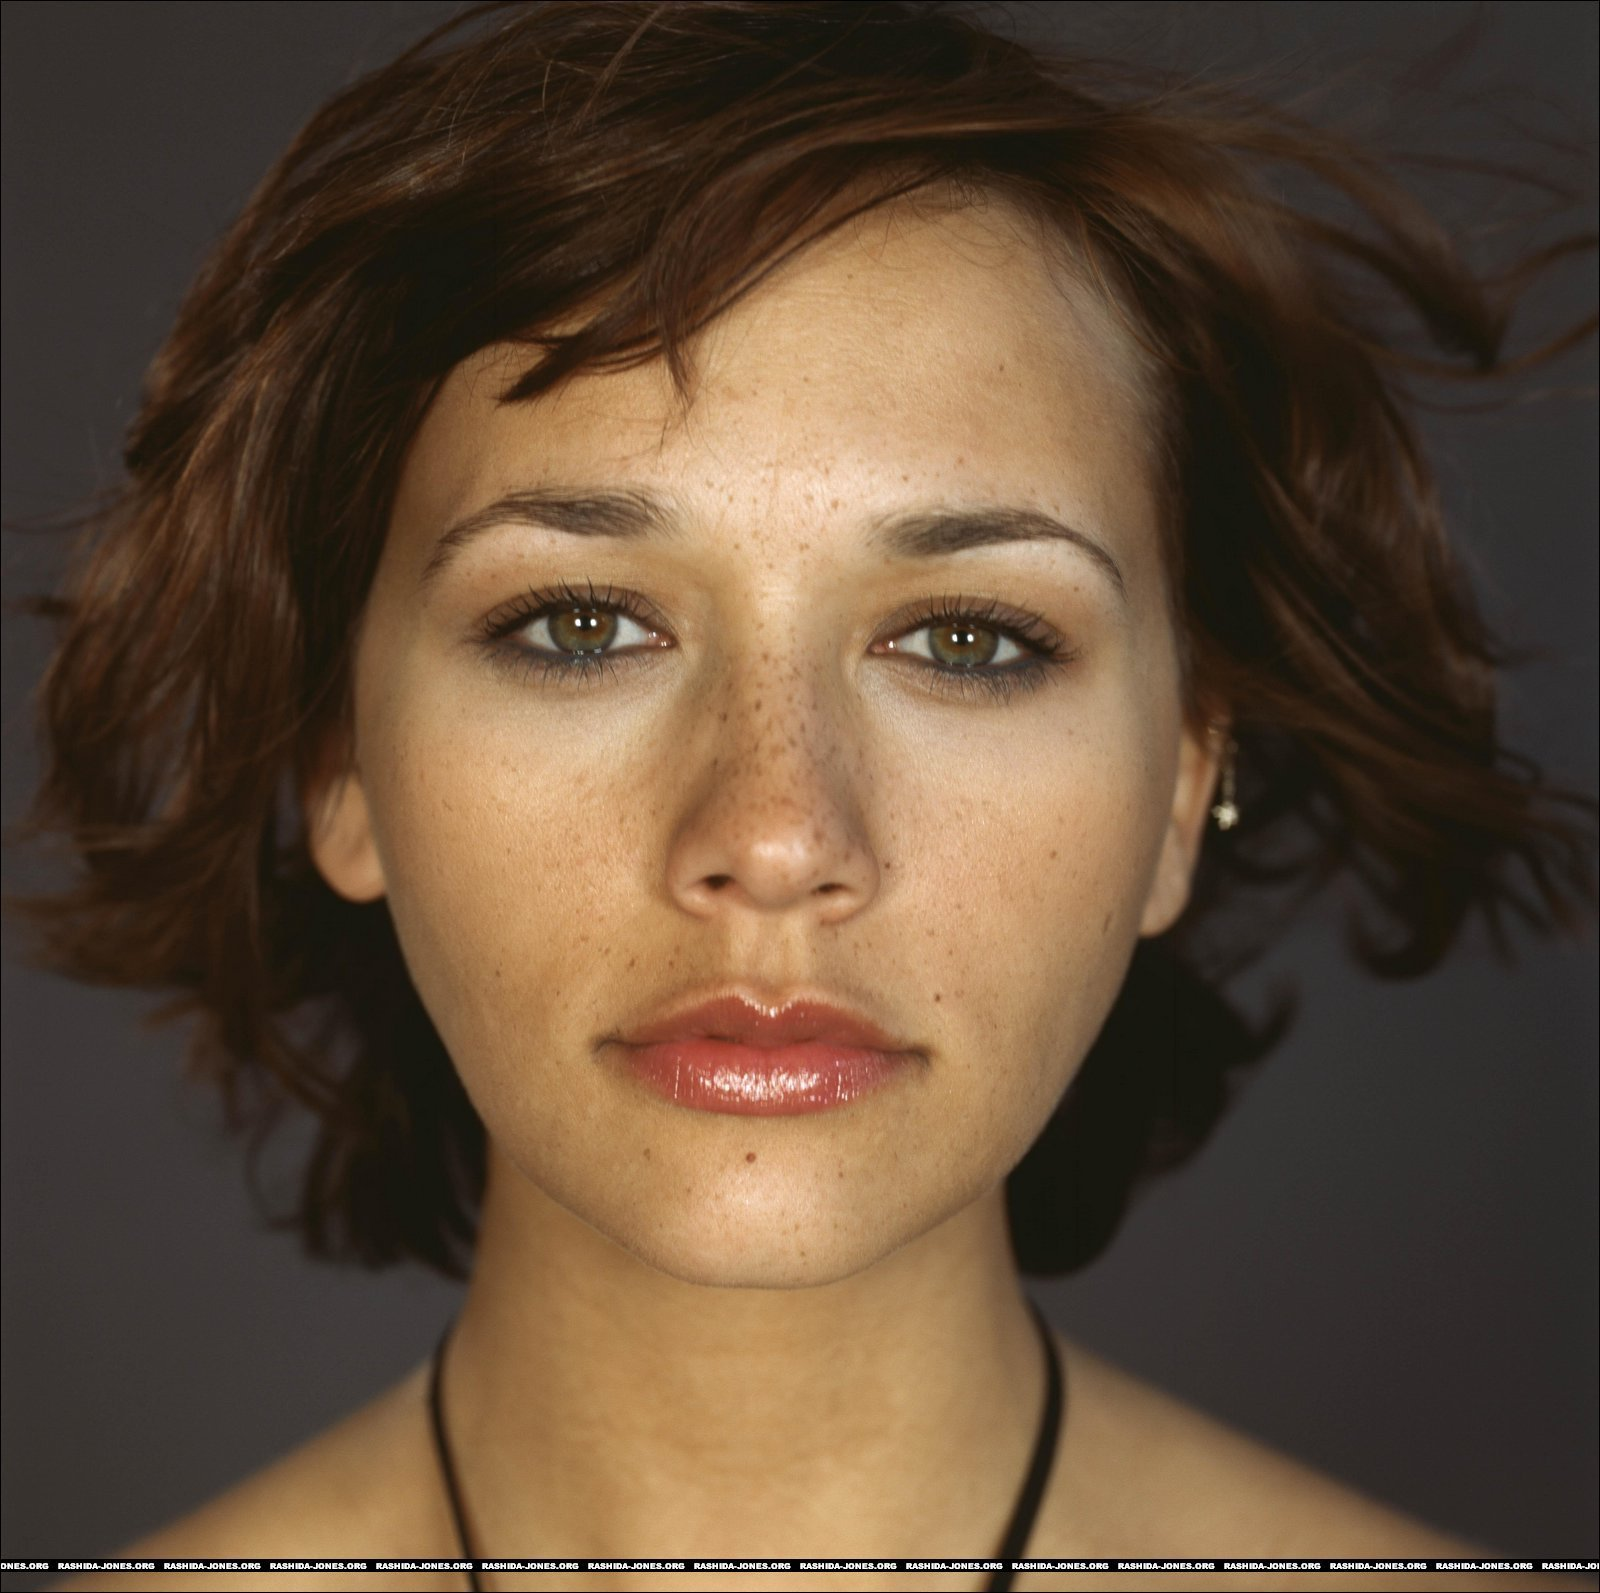 Here is What The Average Human Will Look Like in 2050